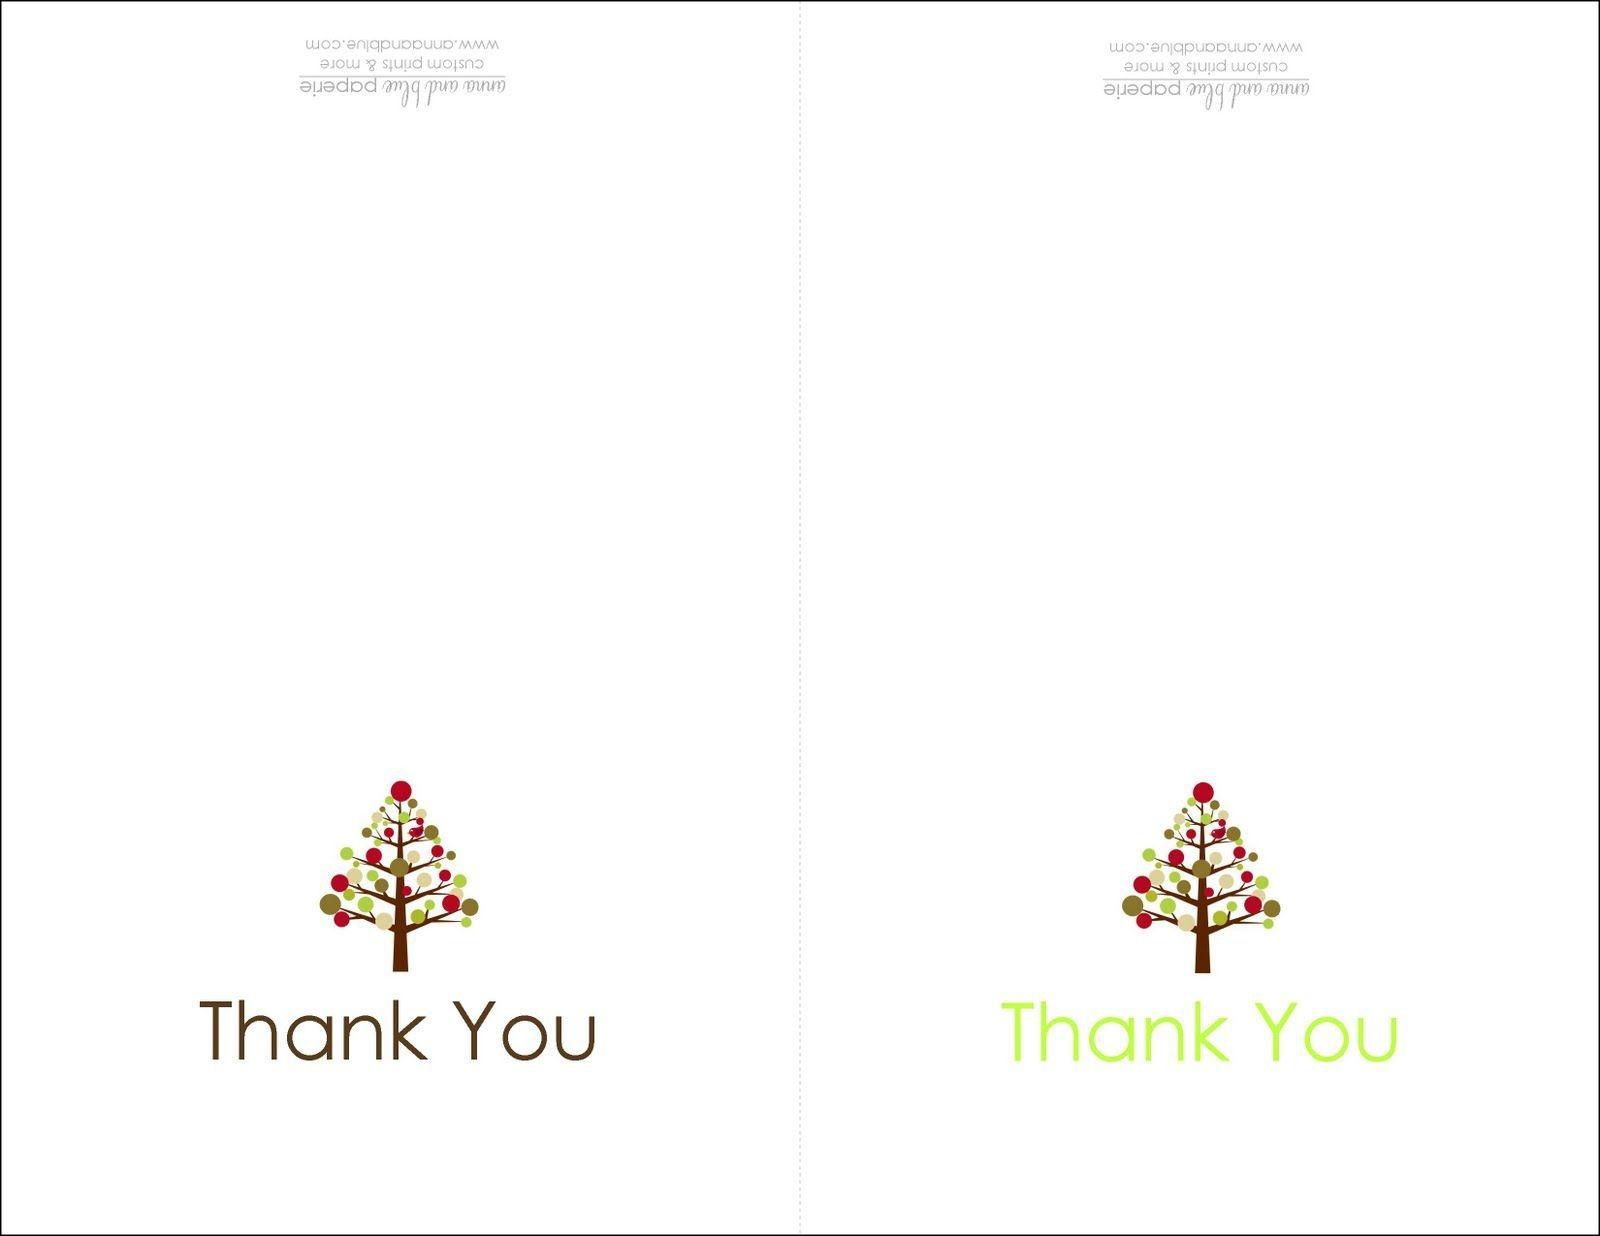 Thank You Cards Printable | Printable | Free Printable Christmas - Christmas Thank You Cards Printable Free